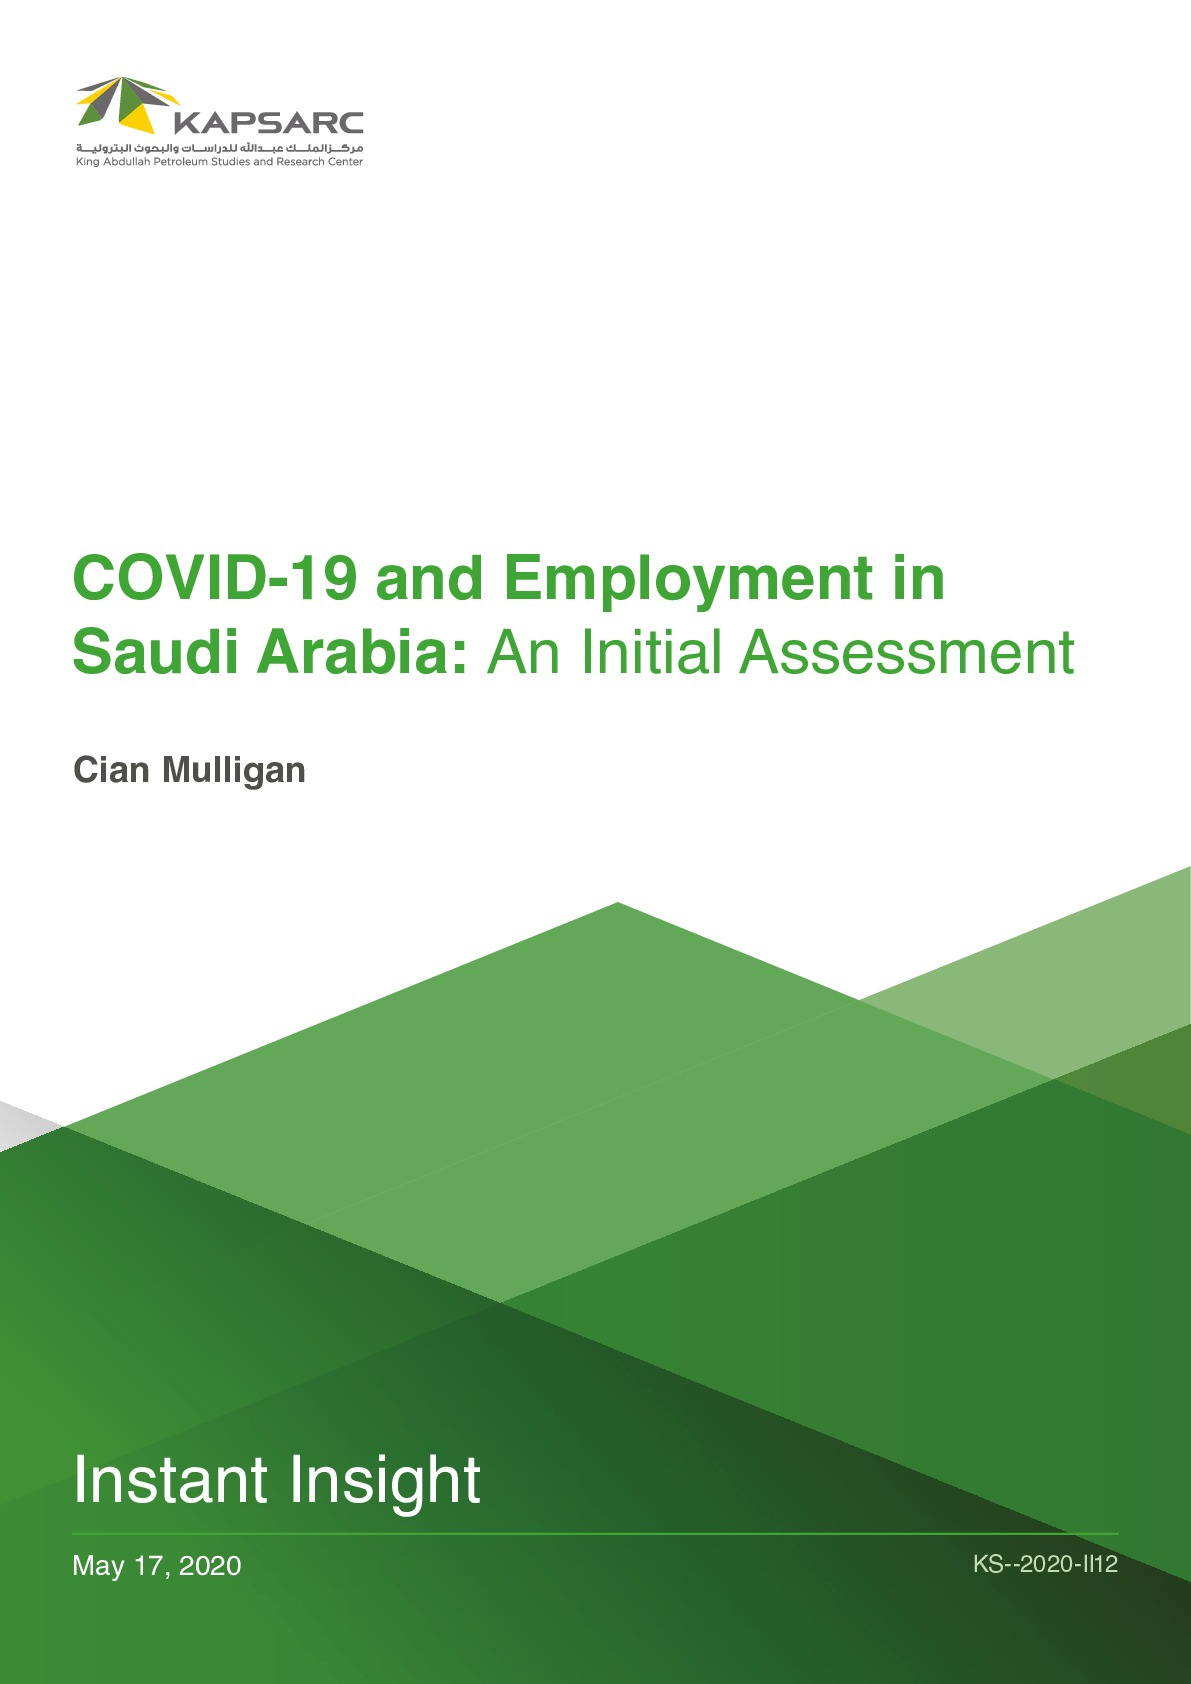 COVID-19 and Employment in Saudi Arabia: An Initial Assessment